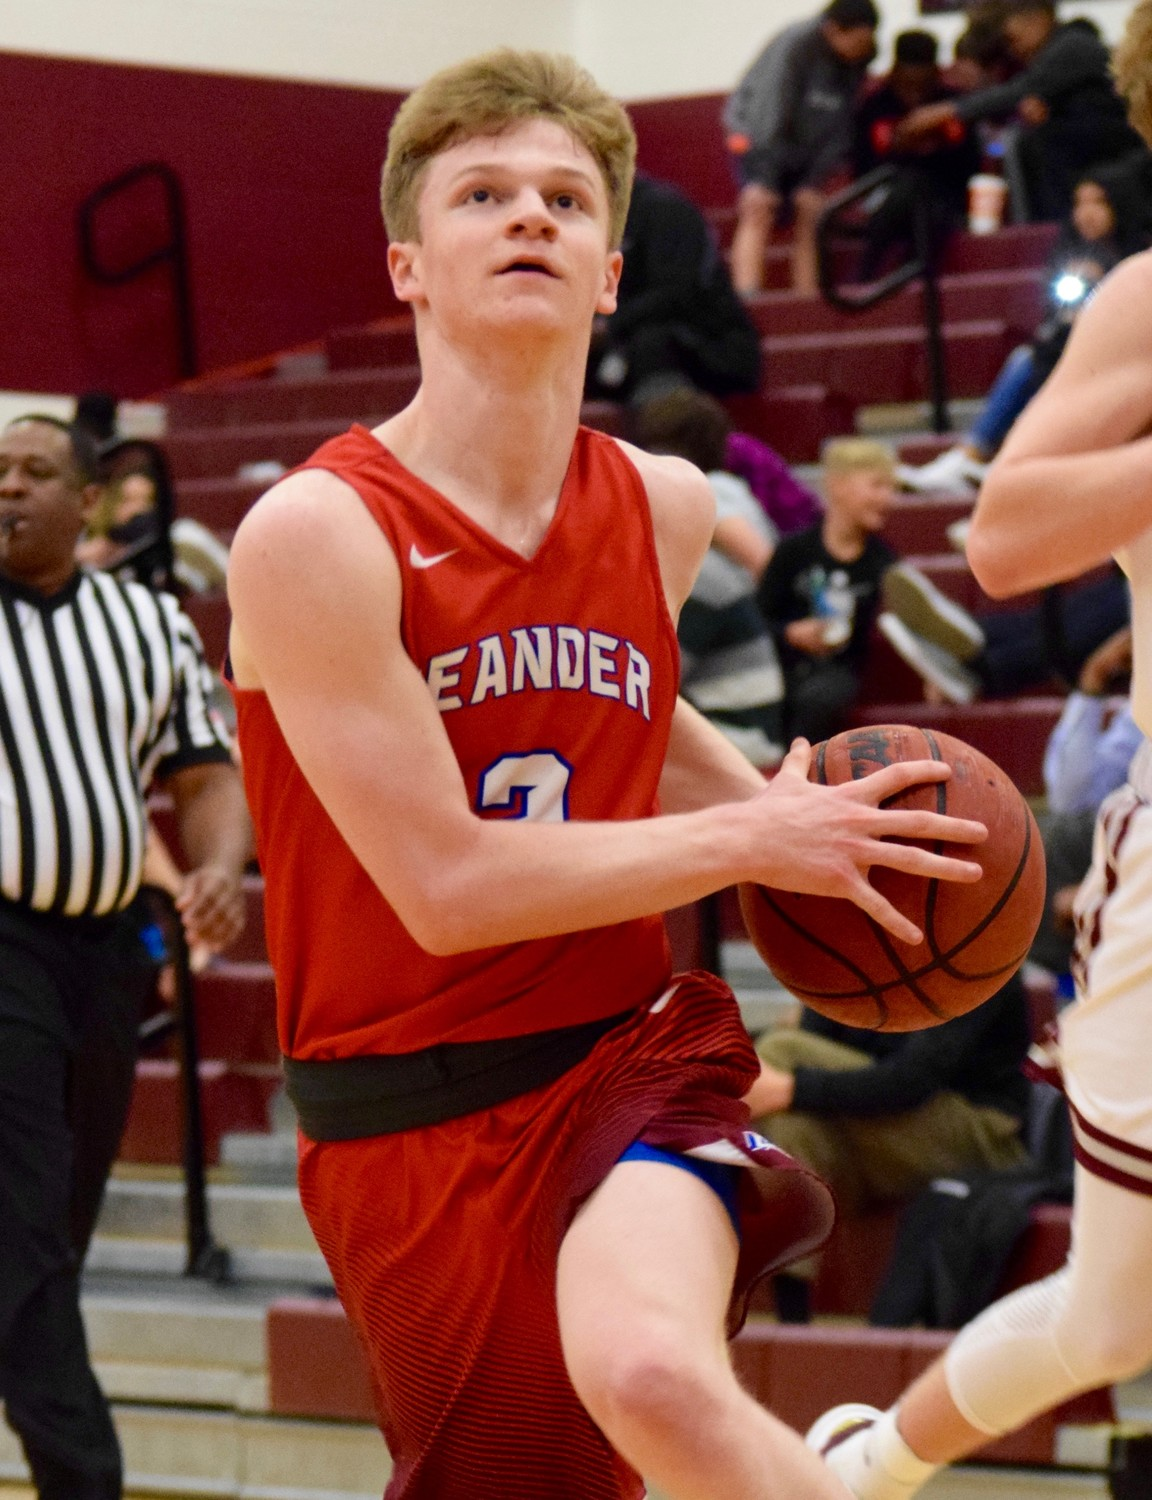 Landon Sisson scored 10 points and Leander beat Round Rock 45-38 on Tuesday night Round Rock High School.